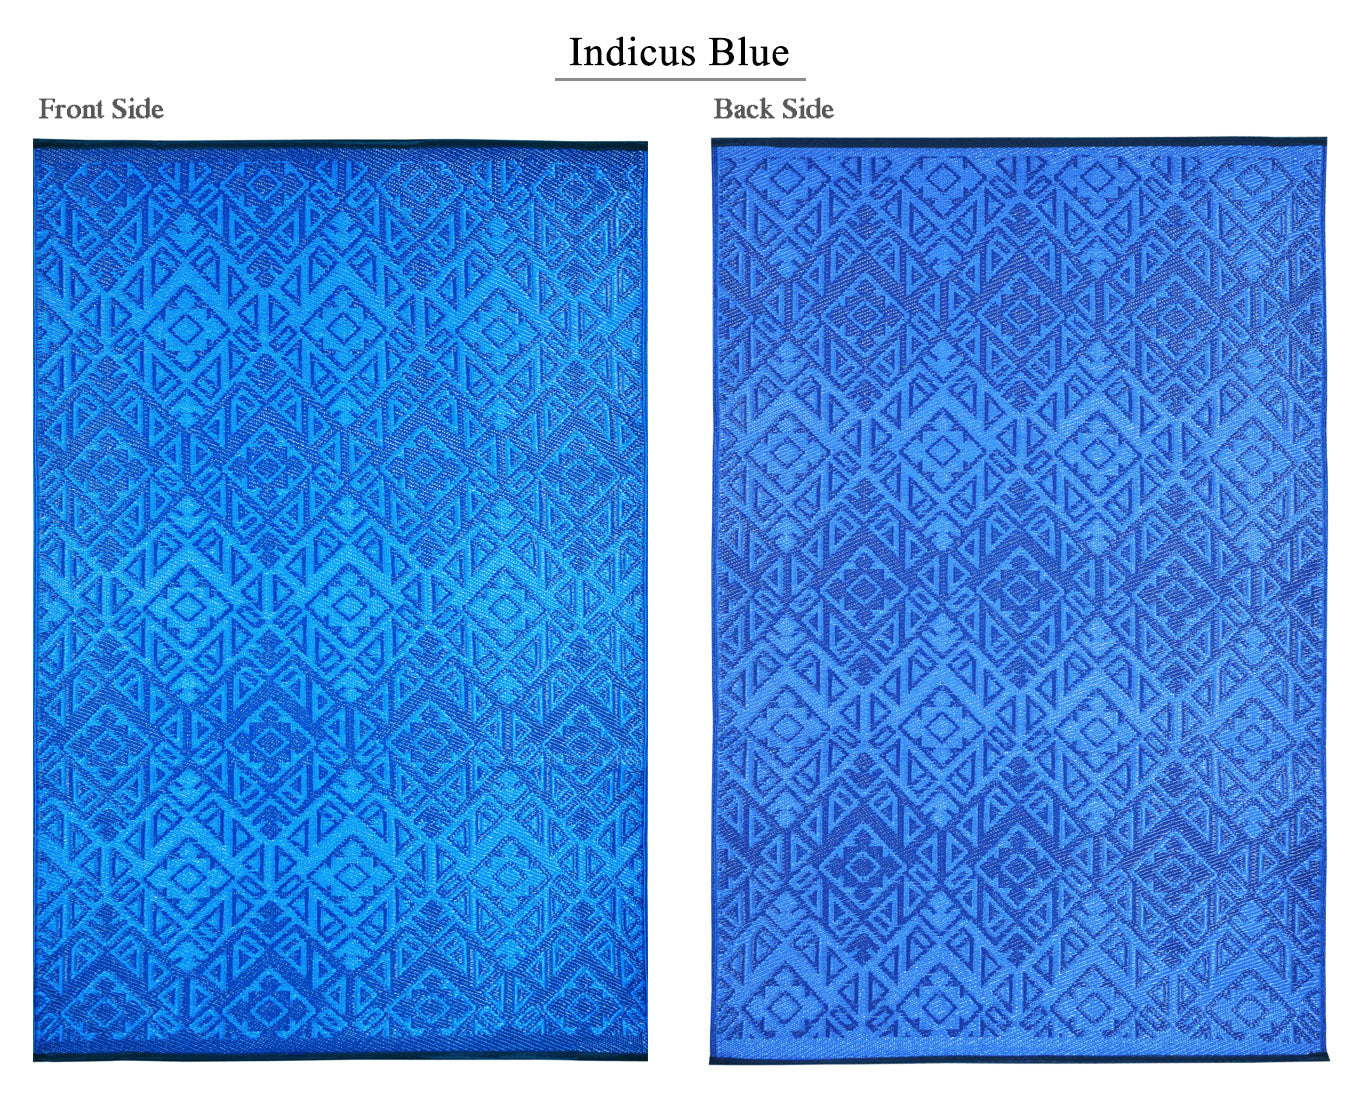 Indicus Outdoor Recycled Plastic Rug (Blue hues)